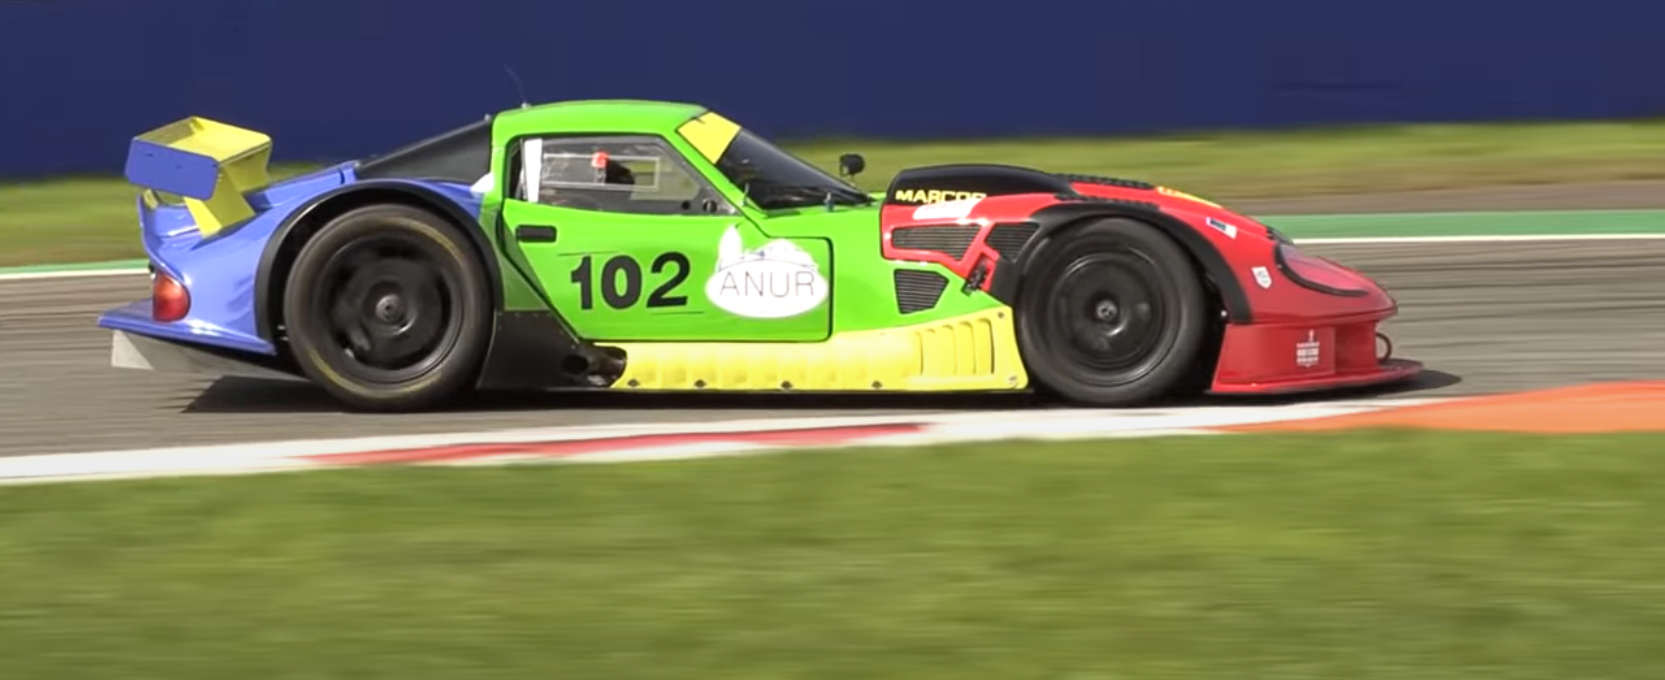 Marcos LM600 at Monza 2019